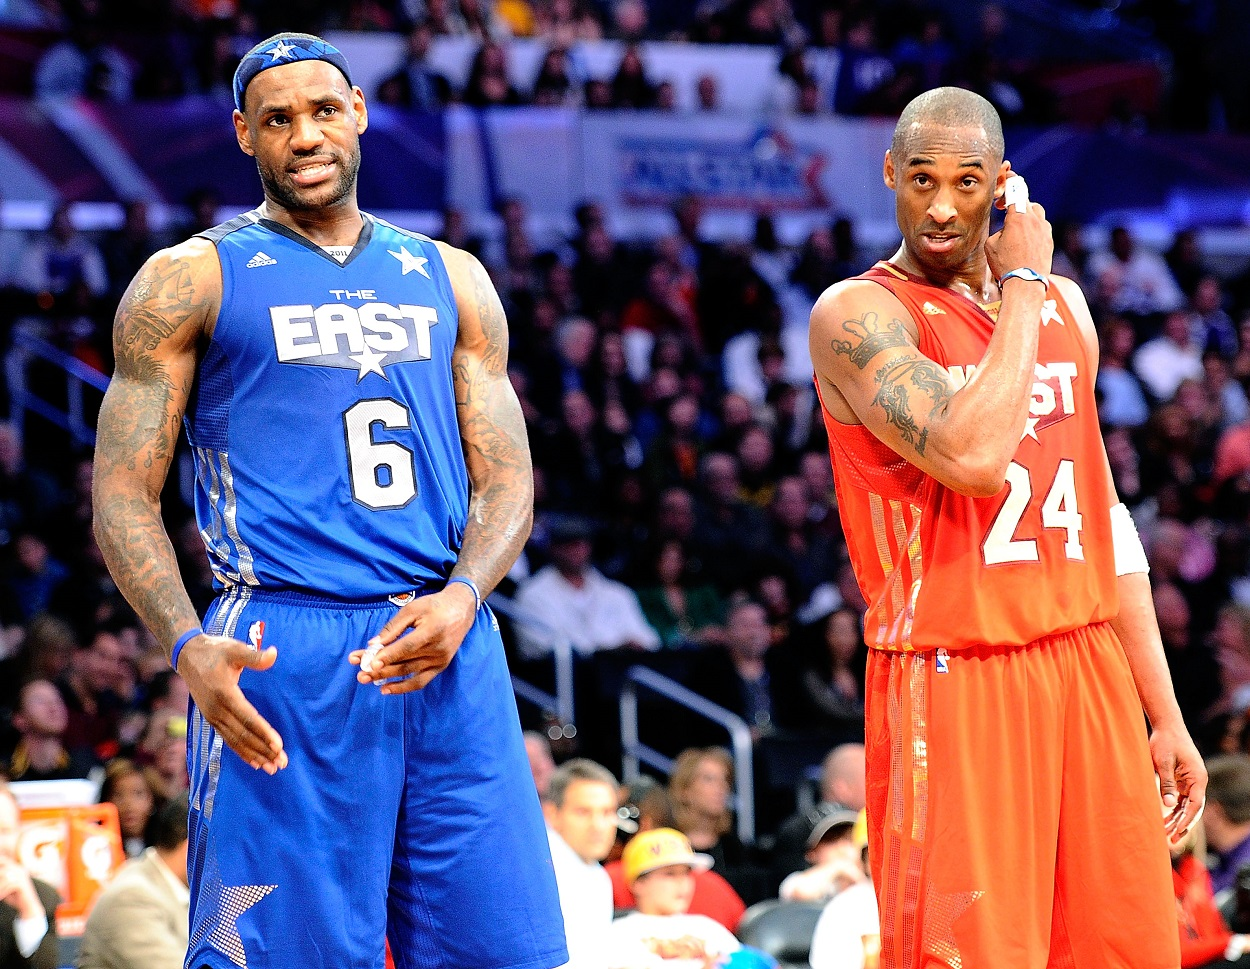 LeBron James and Kobe Bryant at the 2011 NBA All-Star Game